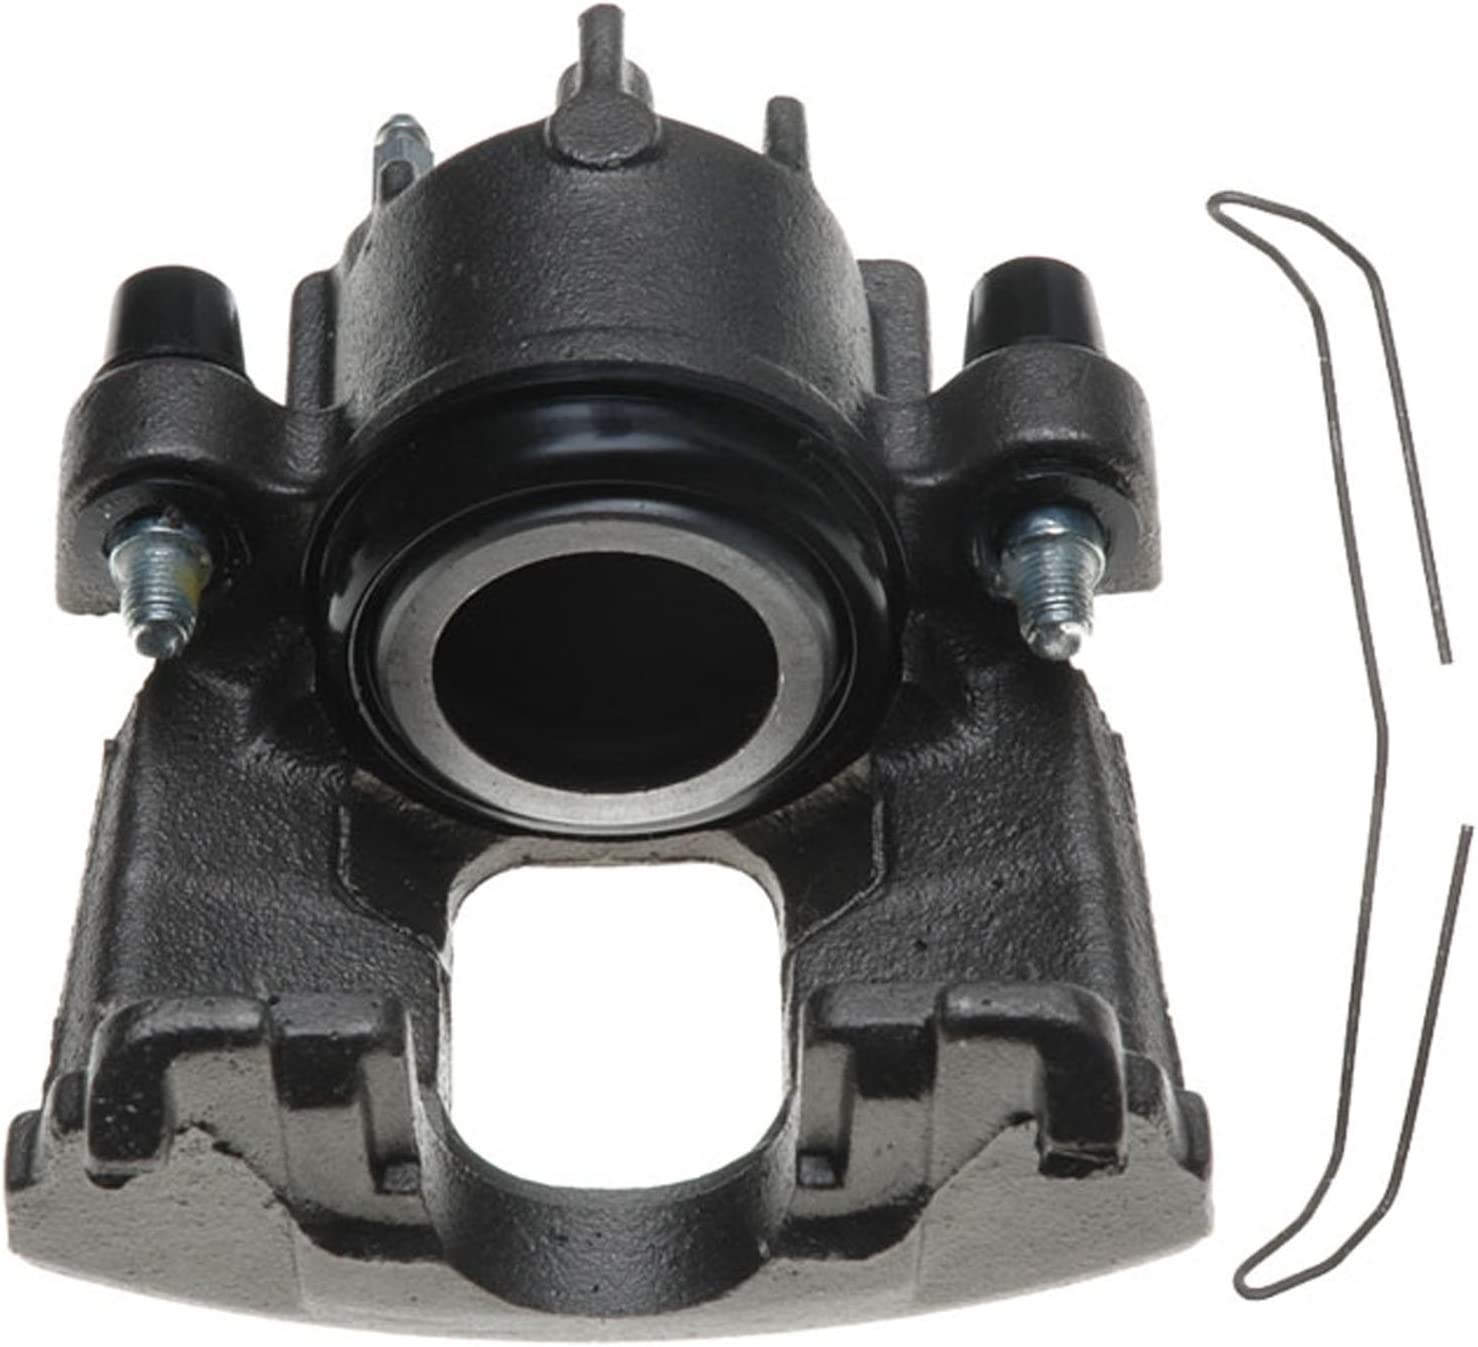 Friction Ready Non-Coated Remanufactured ACDelco 18FR1829 Professional Front Driver Side Disc Brake Caliper Assembly without Pads